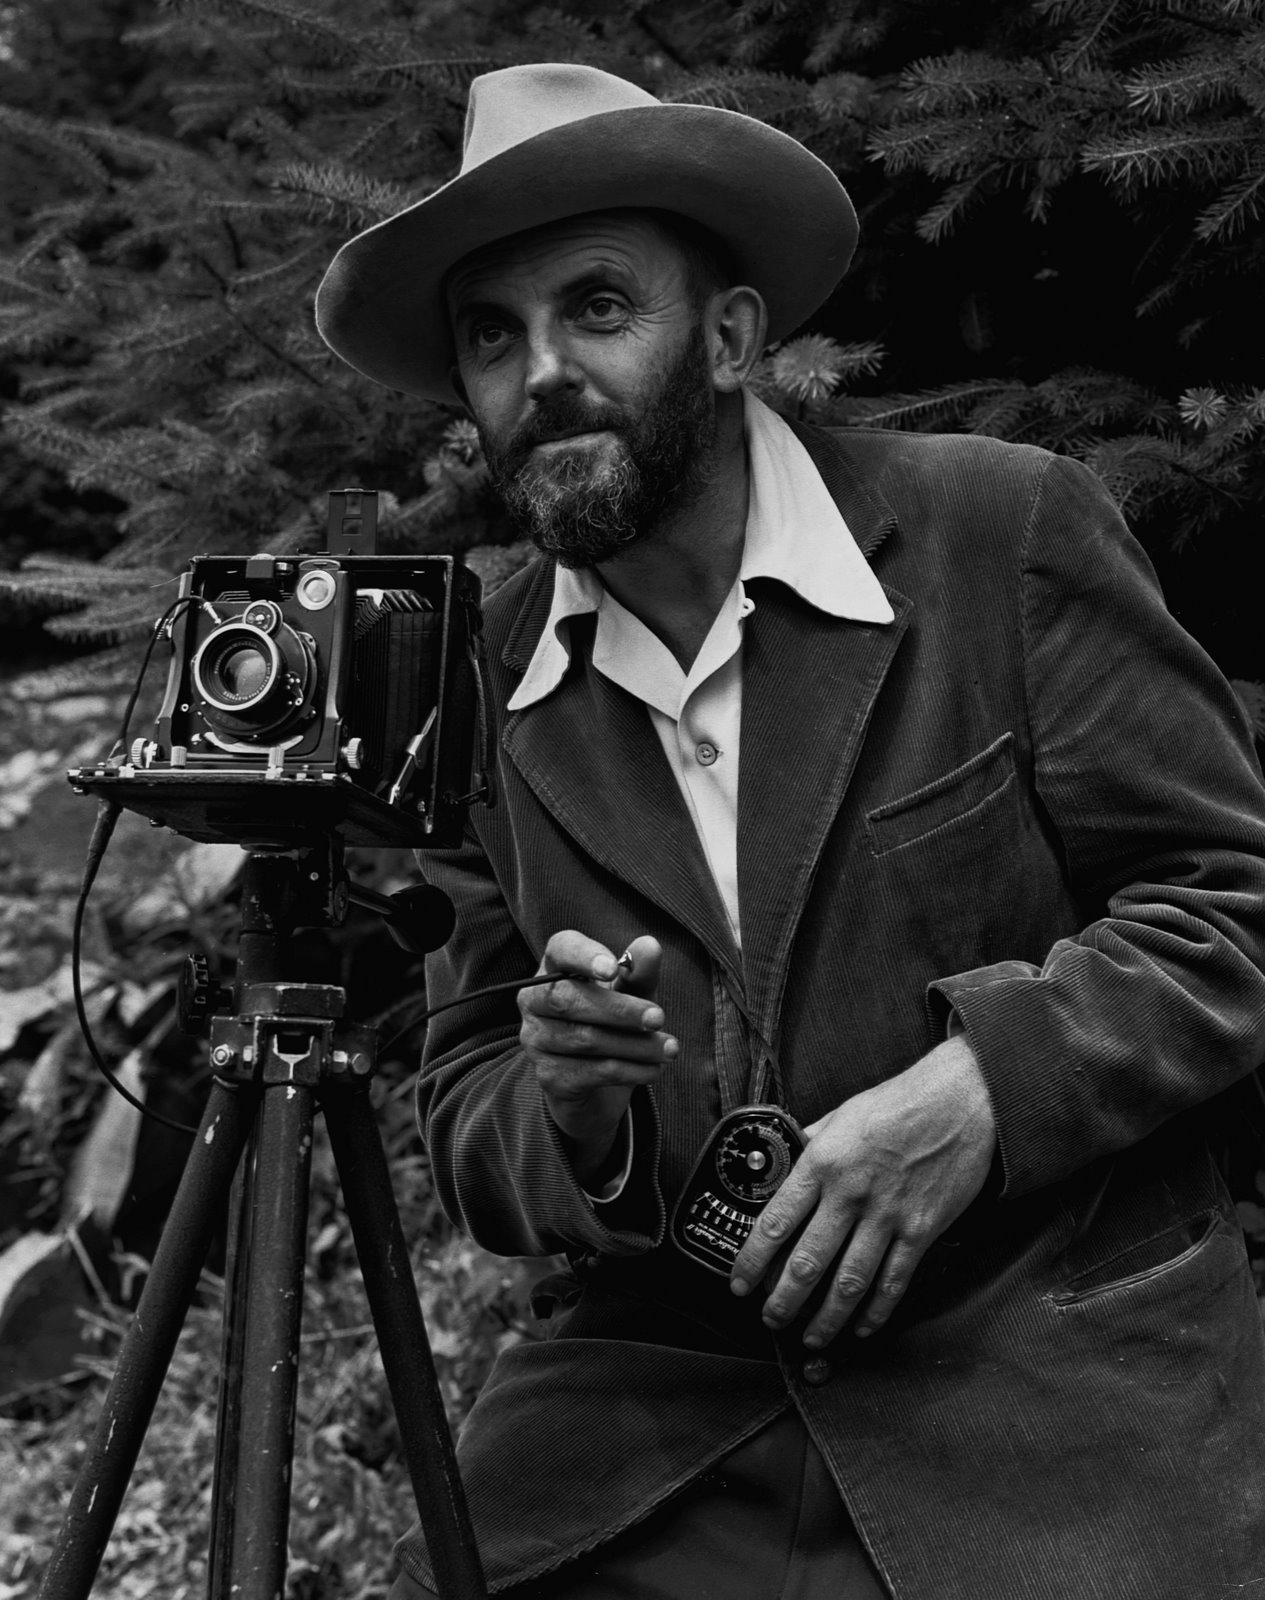 J. Malcolm Greany: Ansel Adams and camera